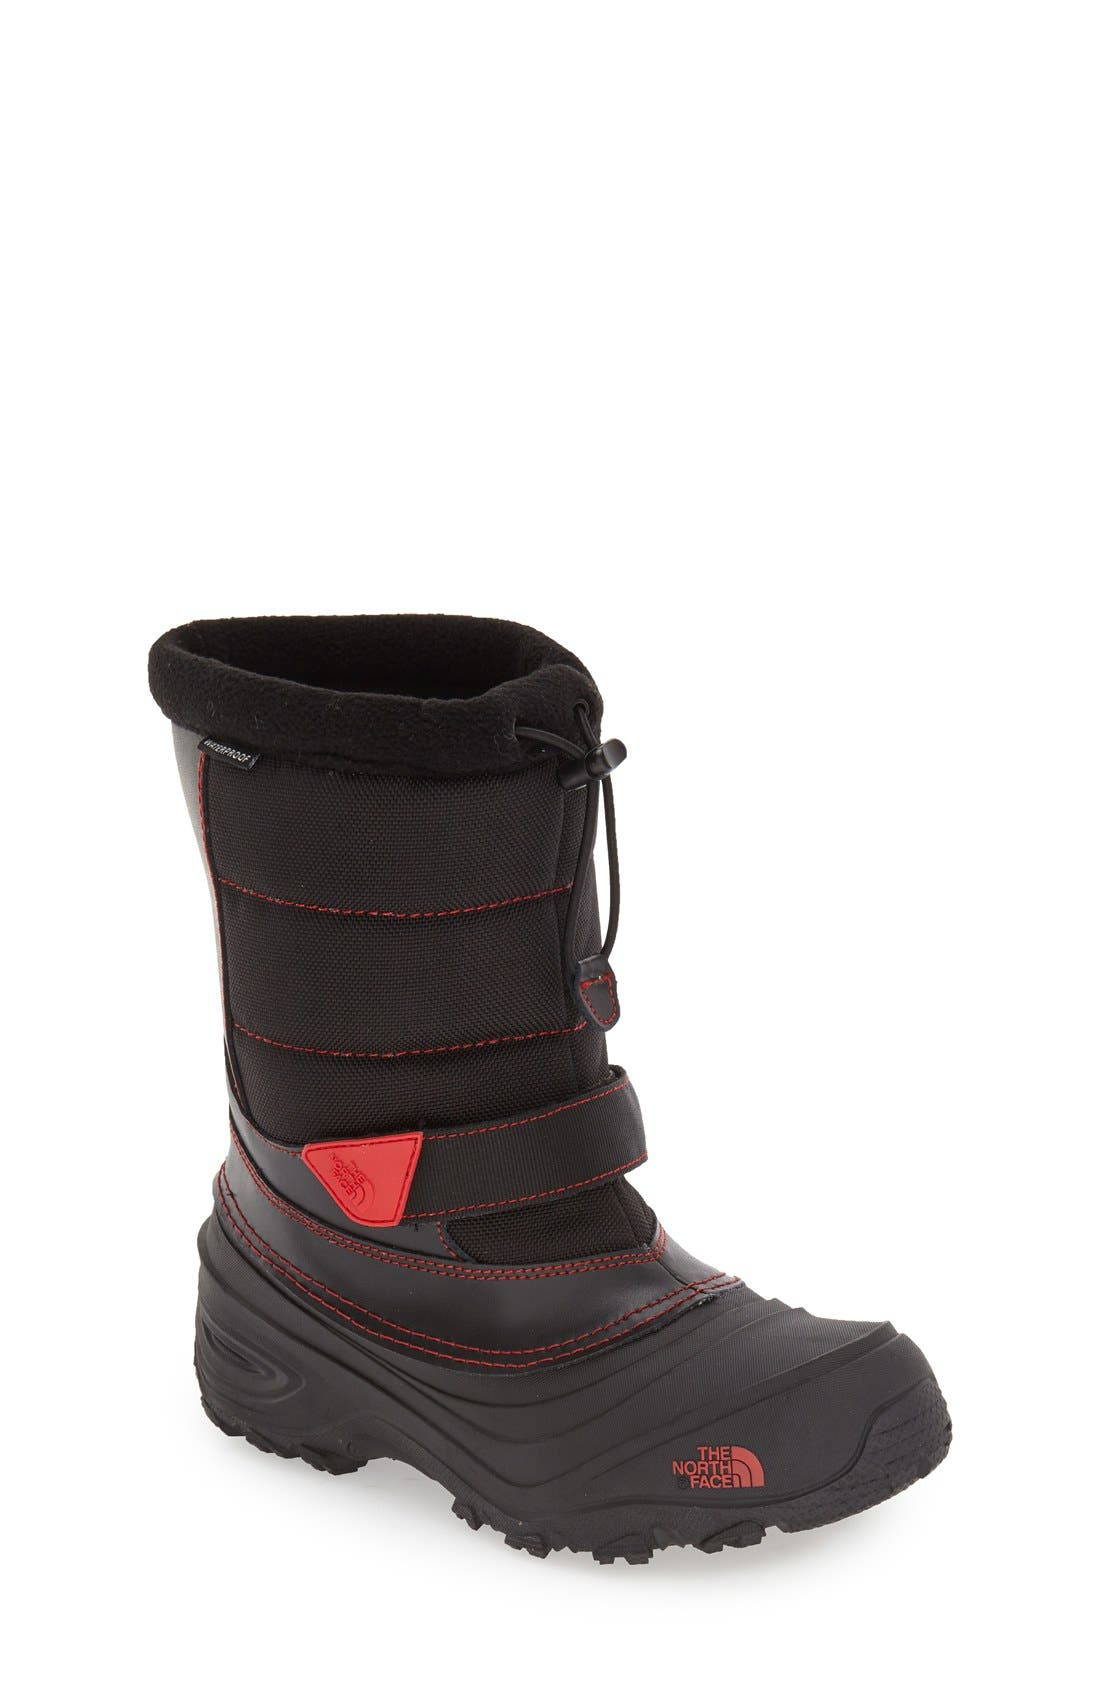 'Alpenglow Extreme II' Waterproof Snow Boot,                             Main thumbnail 1, color,                             001